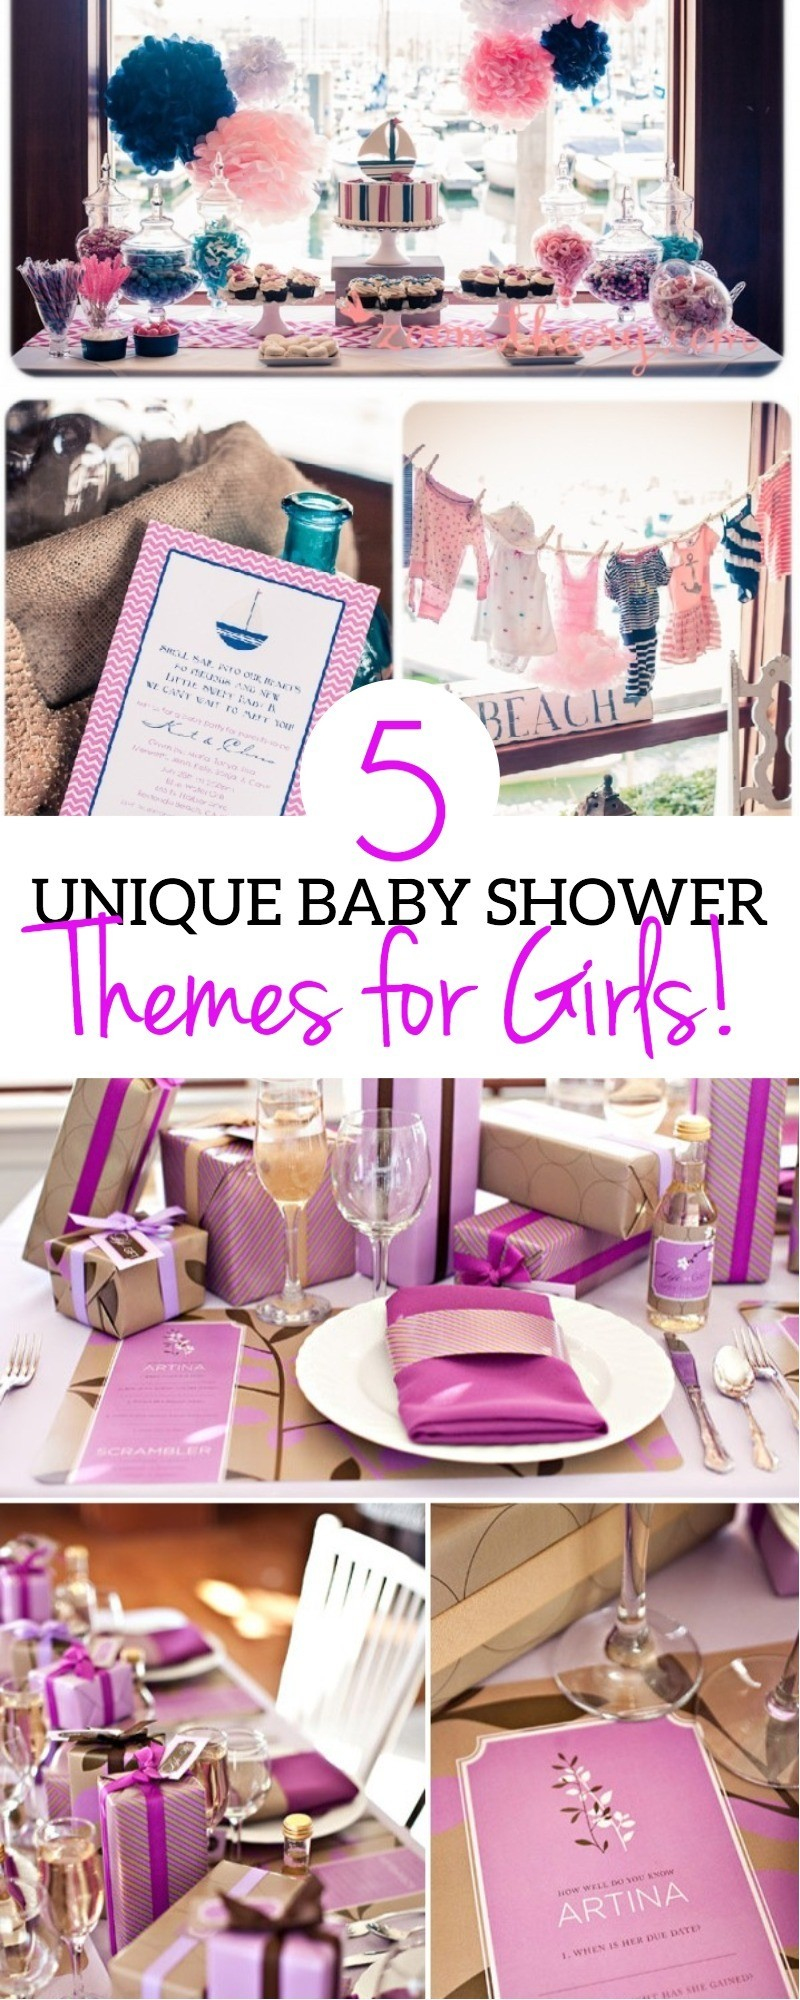 5 Unique Baby Shower Ideas For Girls We Love These Cute Themes